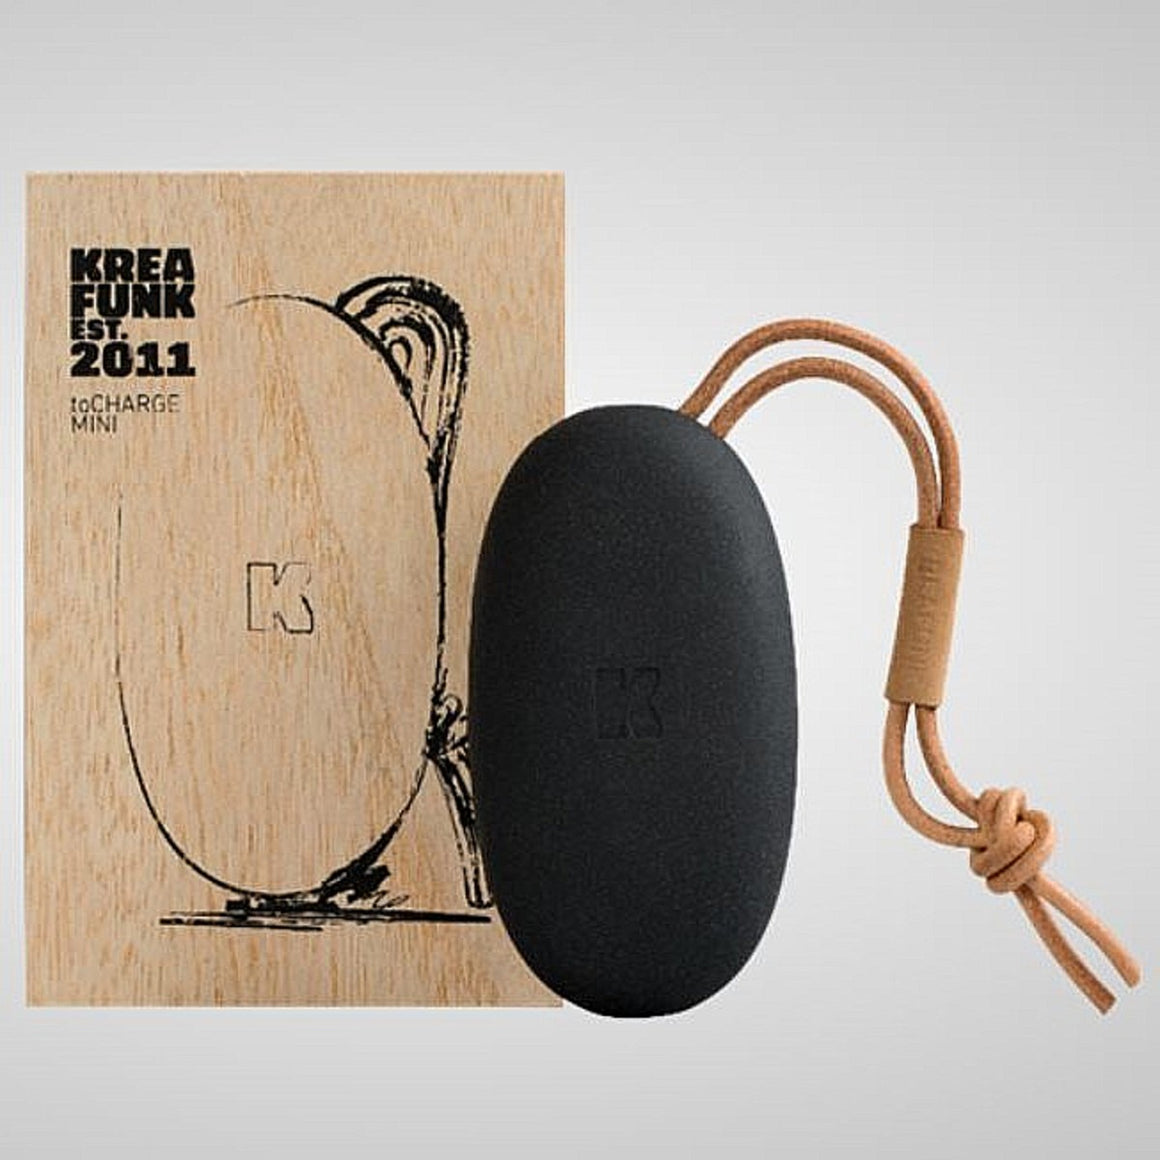 A small pebble shaped power bank in black with a tan leather strap. Shown in front of its natural wood box.